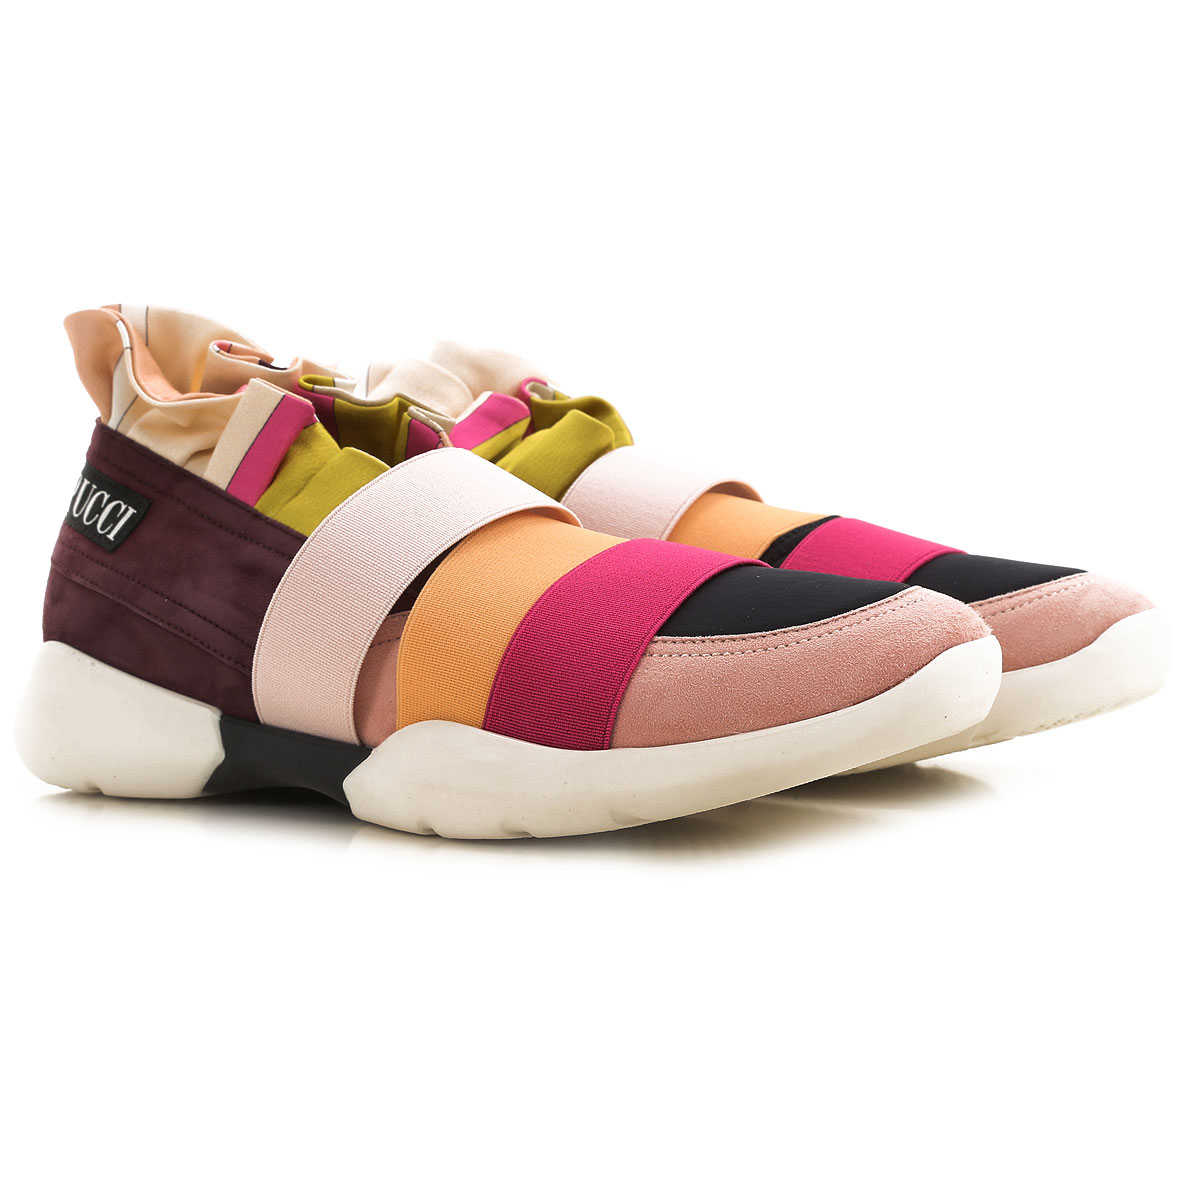 Emilio Pucci Kids Shoes for Girls Multicolor - GOOFASH -